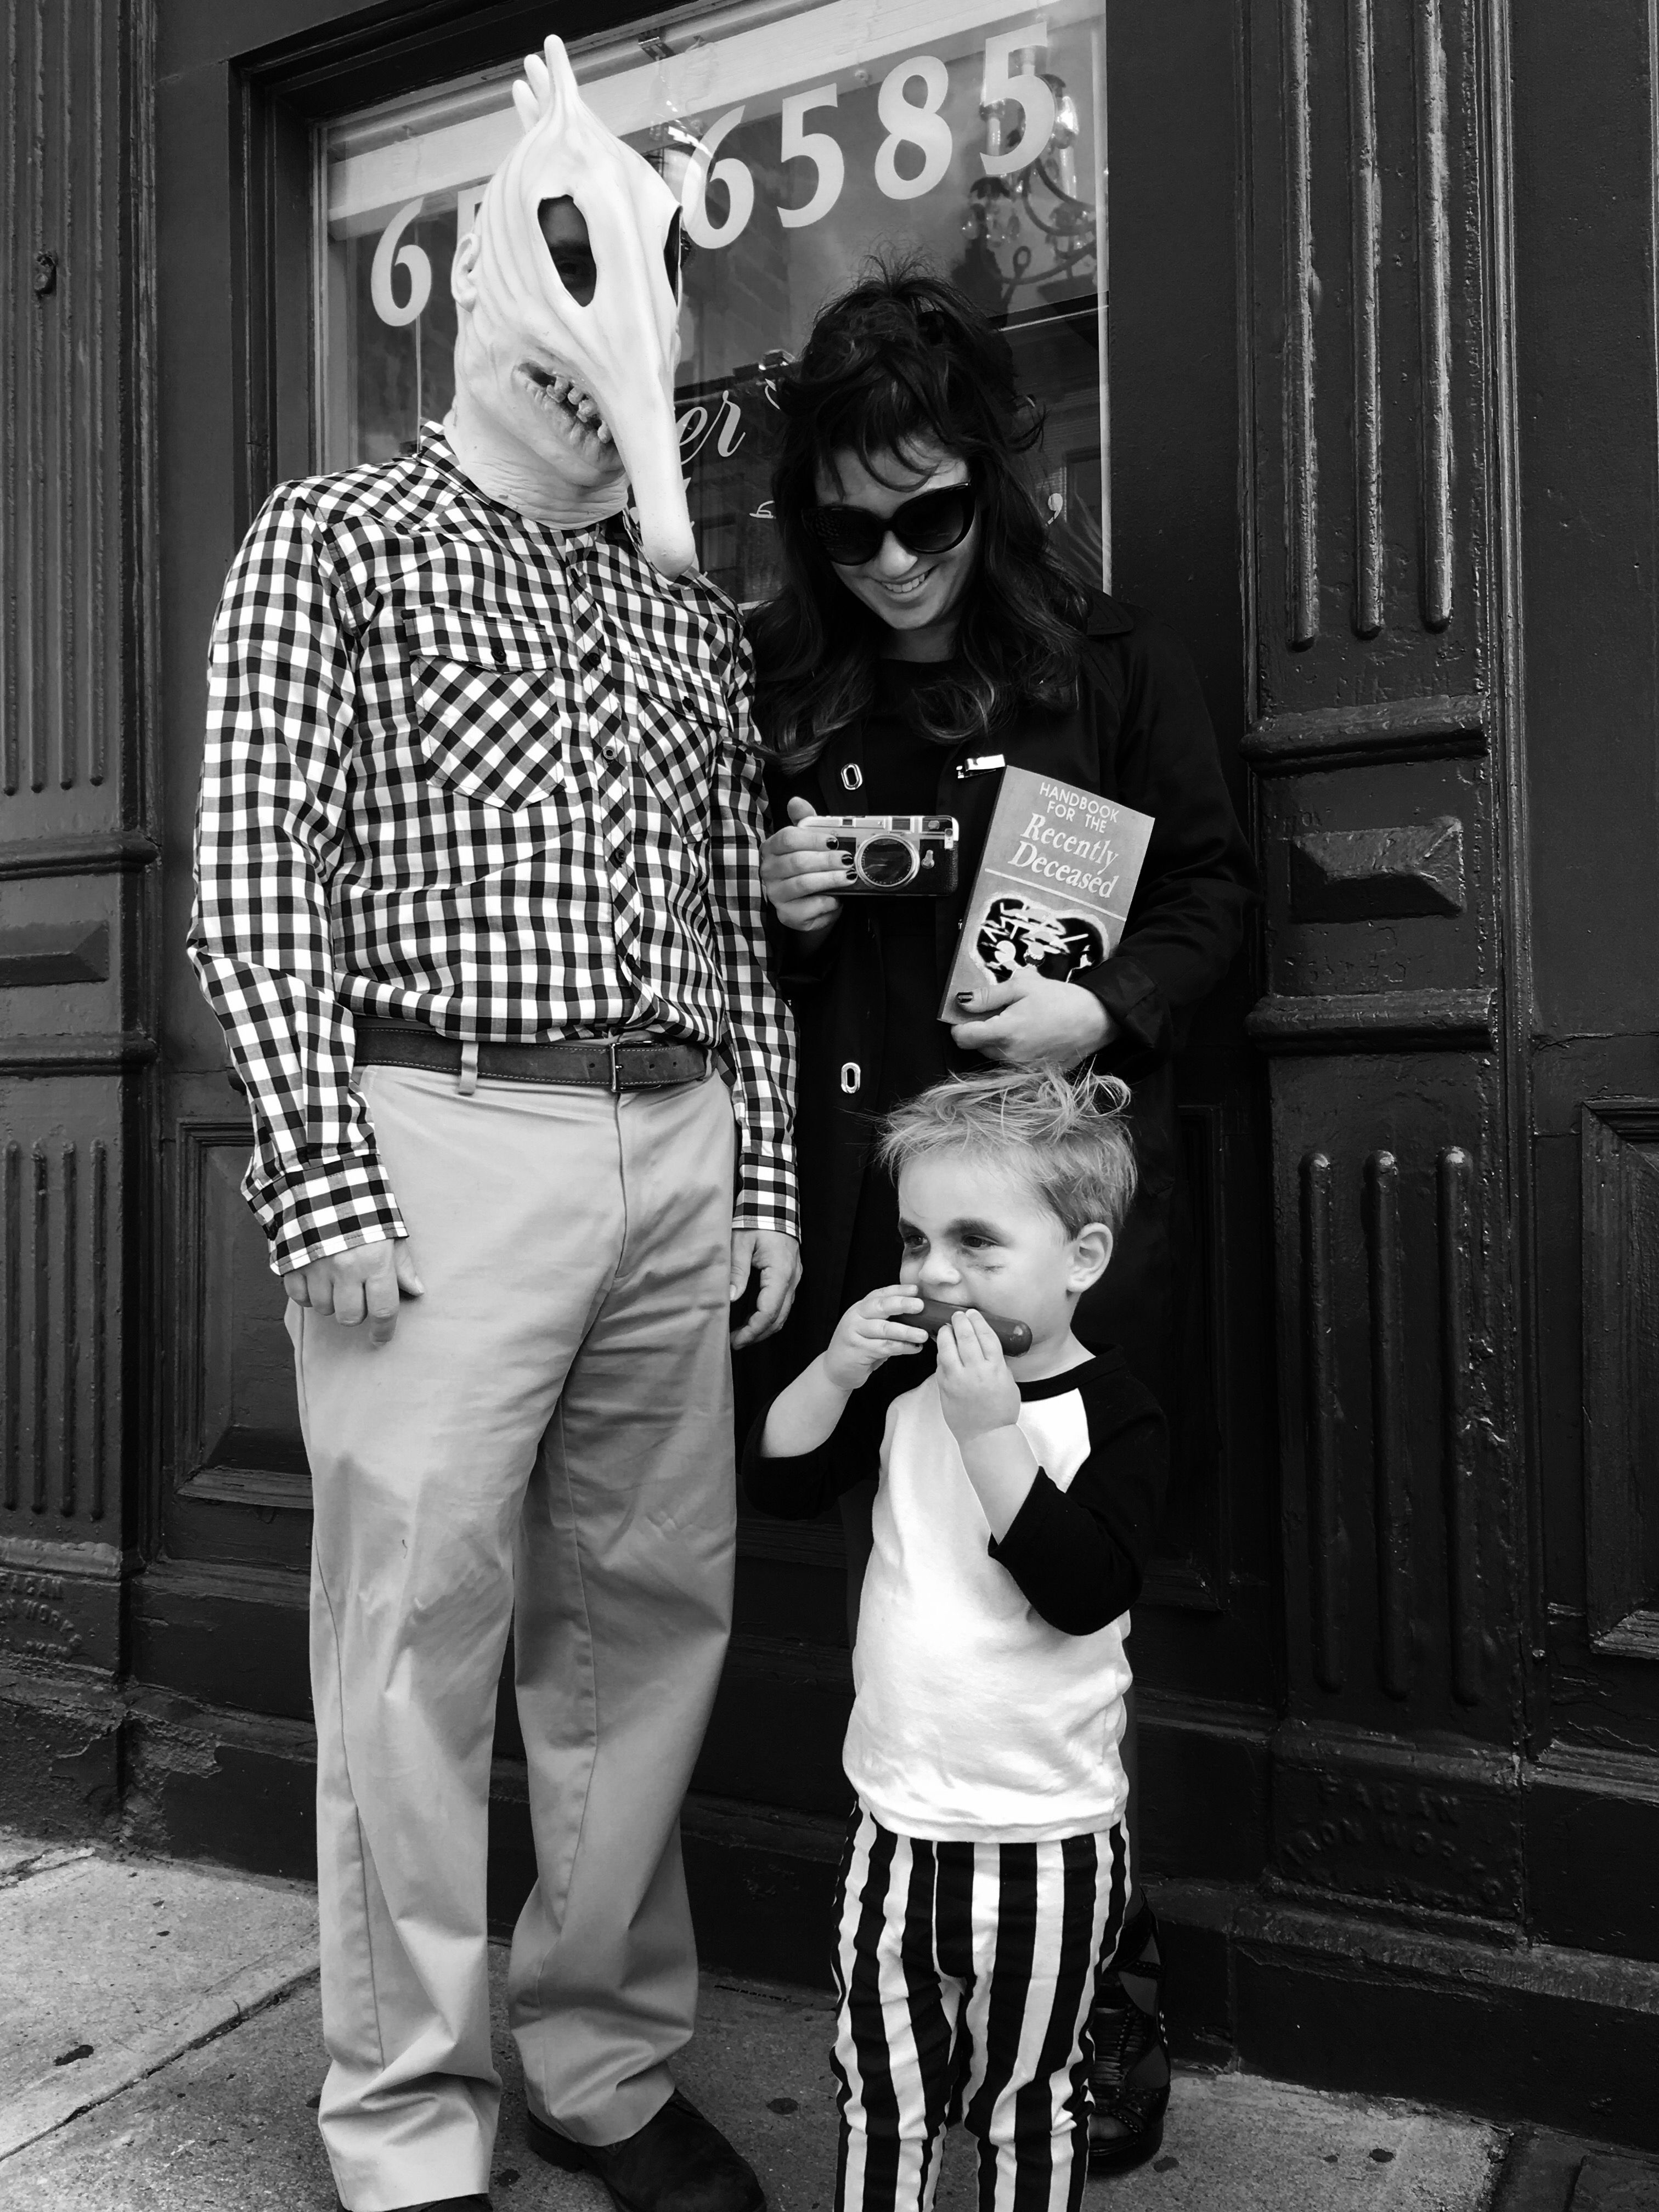 Family Beetlejuice Costume Halloween Costumes For Kids Original Halloween Costumes Top Halloween Costumes